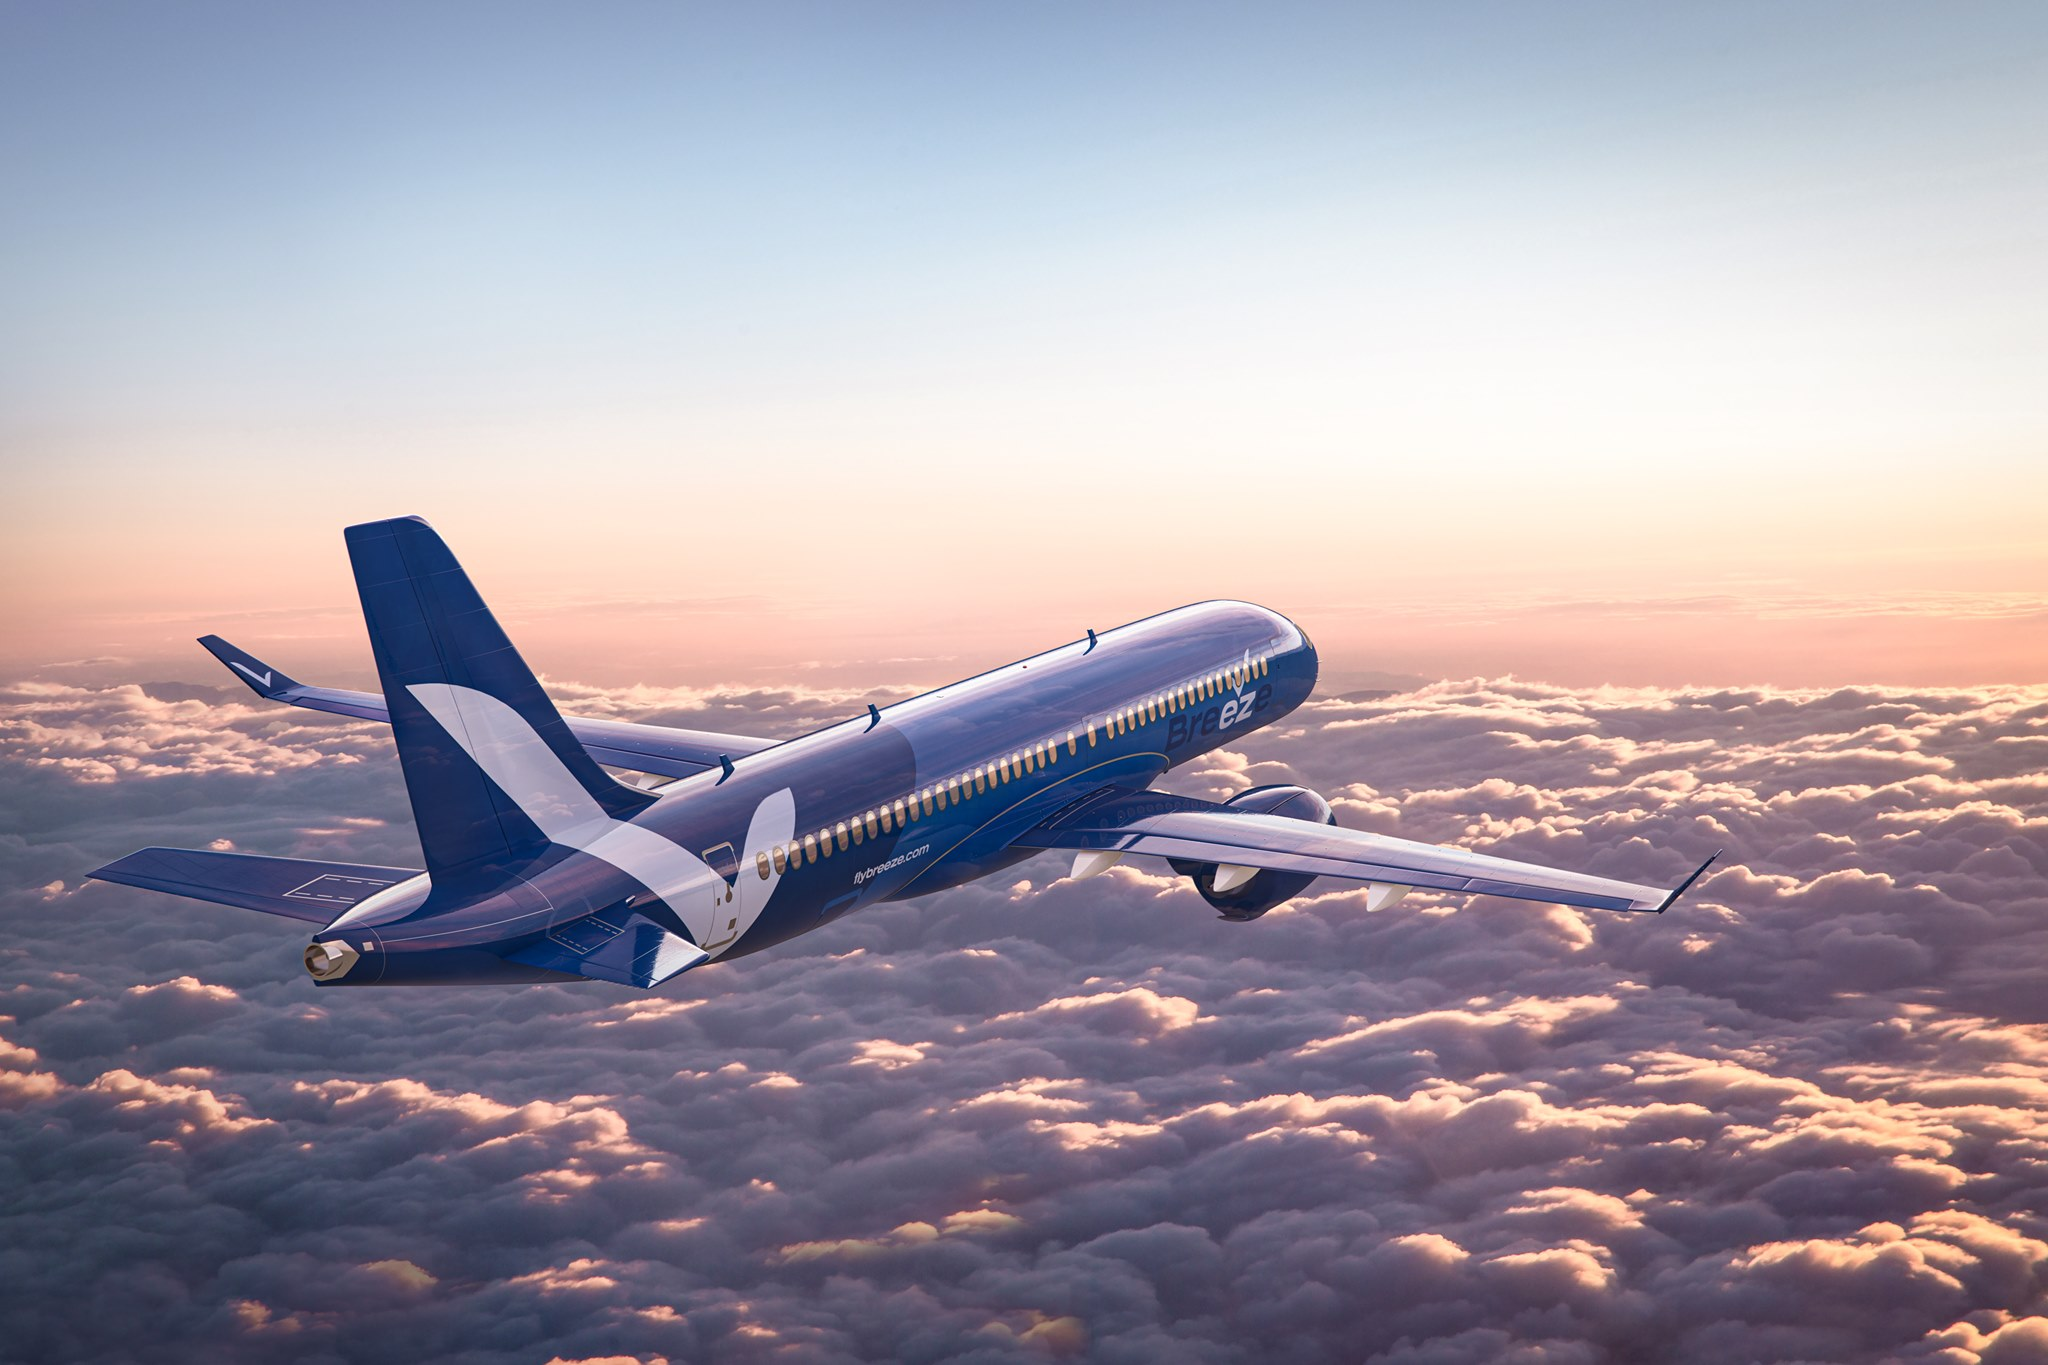 Wow: 80% Of Breeze Airways' Summer Routes Have No Competition - Simple Flying